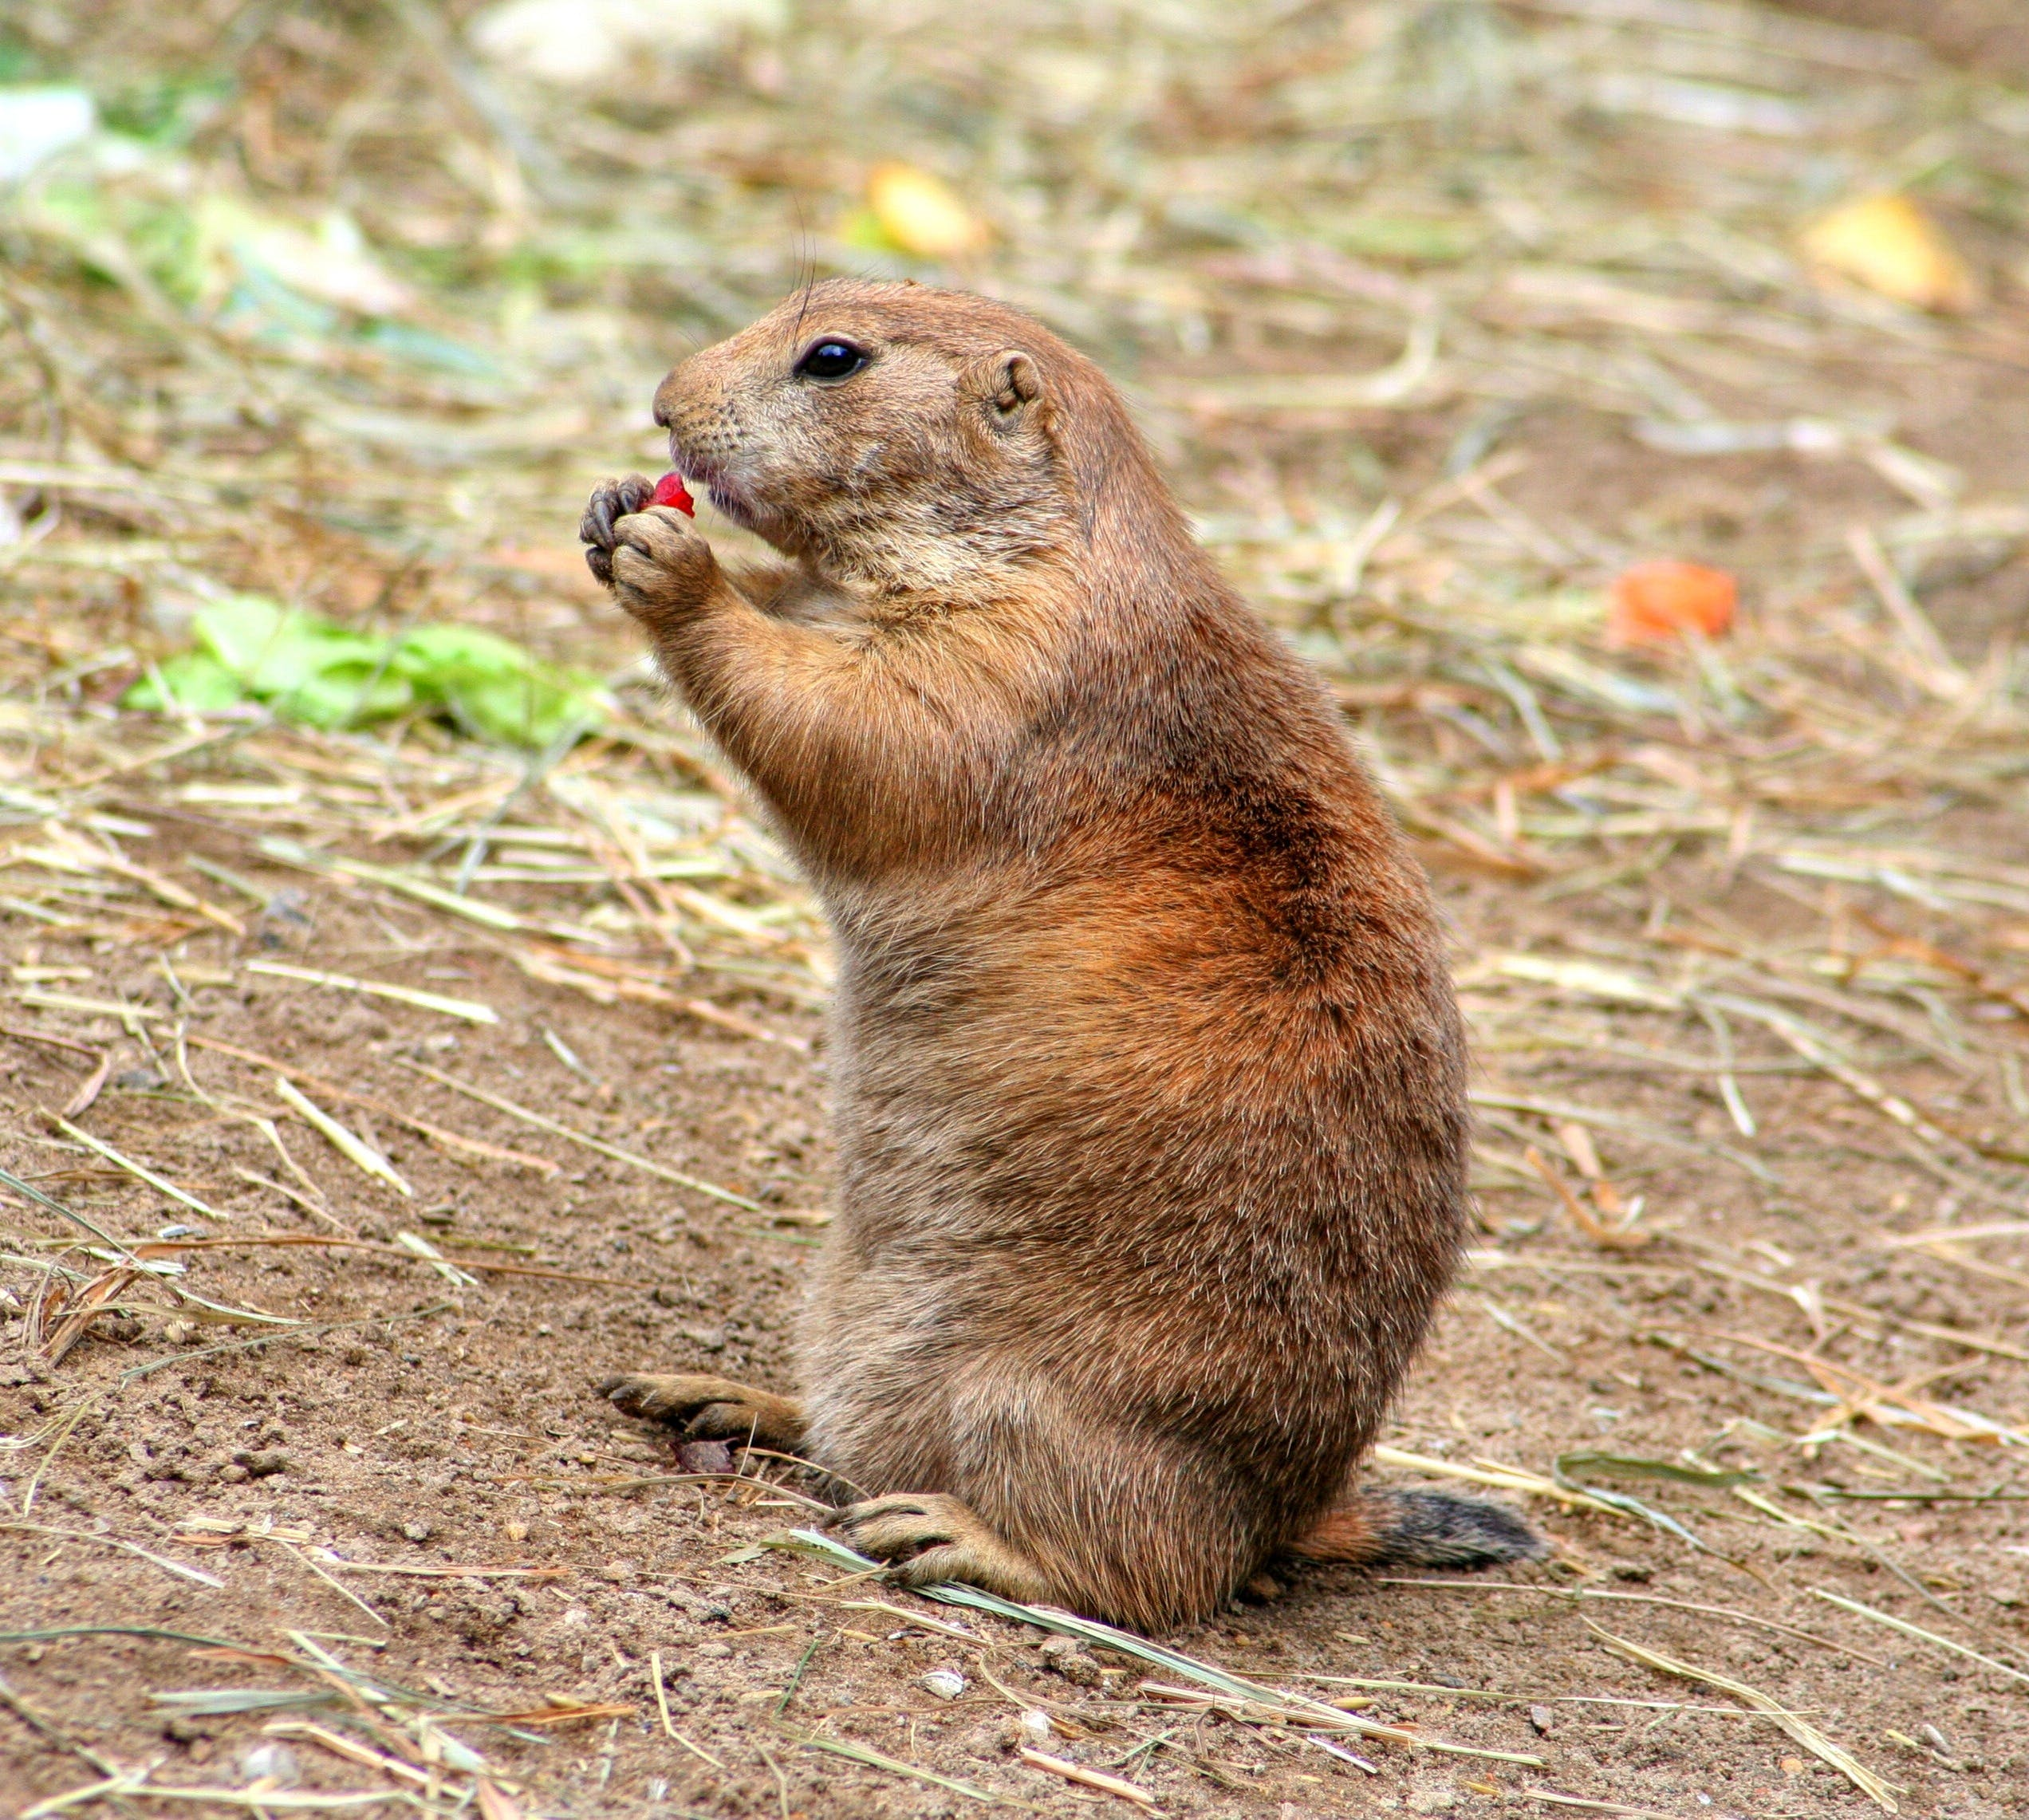 Brown and Gray Prairie Dog